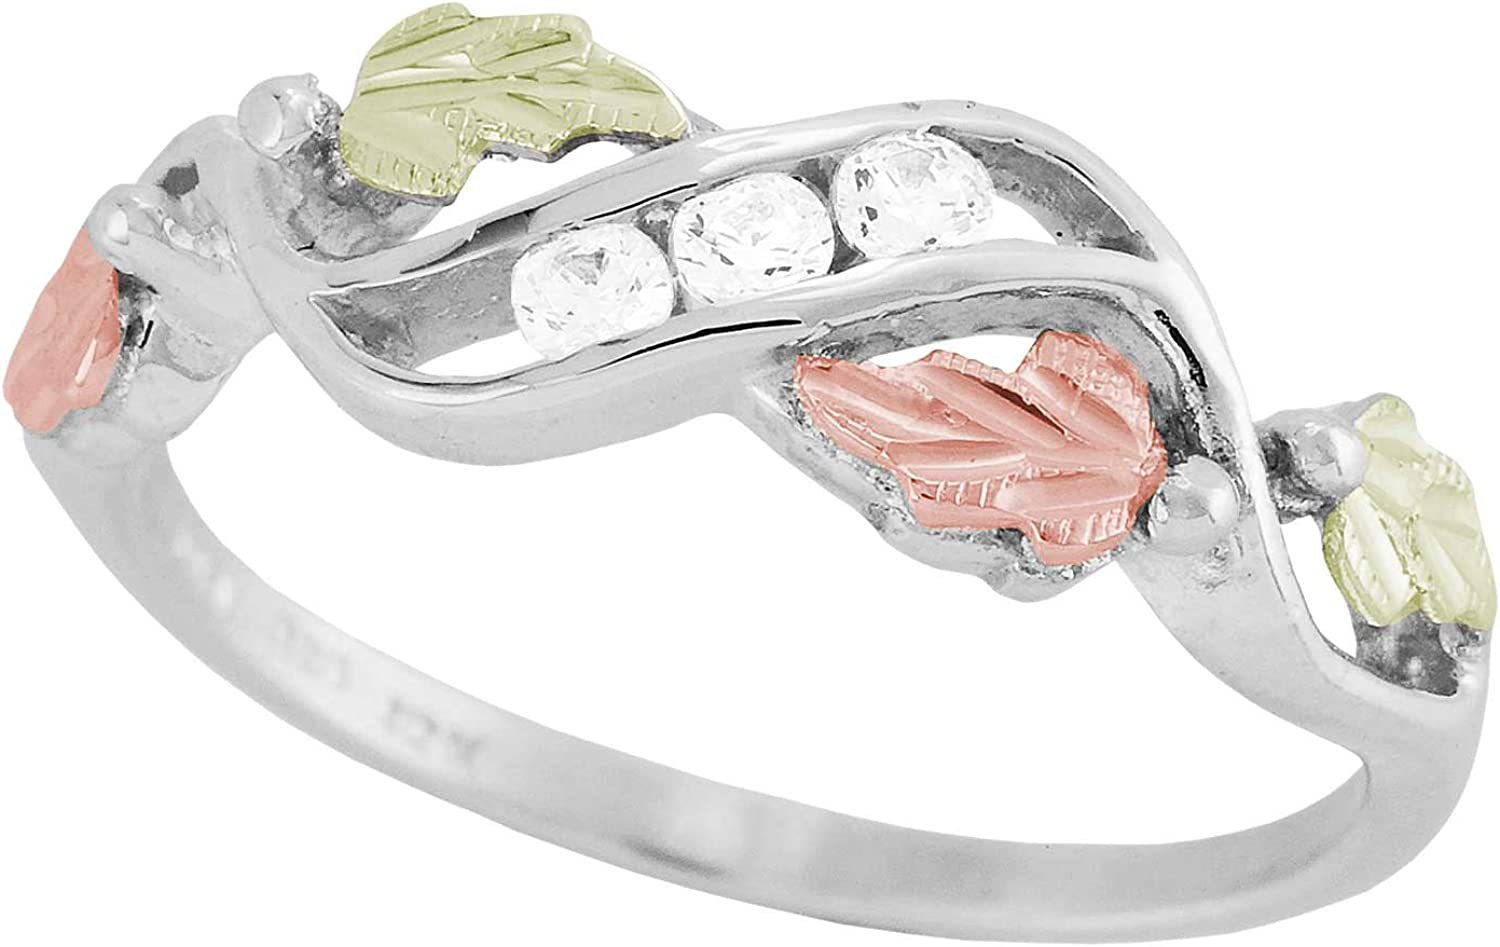 Slim-Profile Cubic Zirconia Ring, Sterling Silver, 12k Green and Rose Gold Black Hills Gold Motif